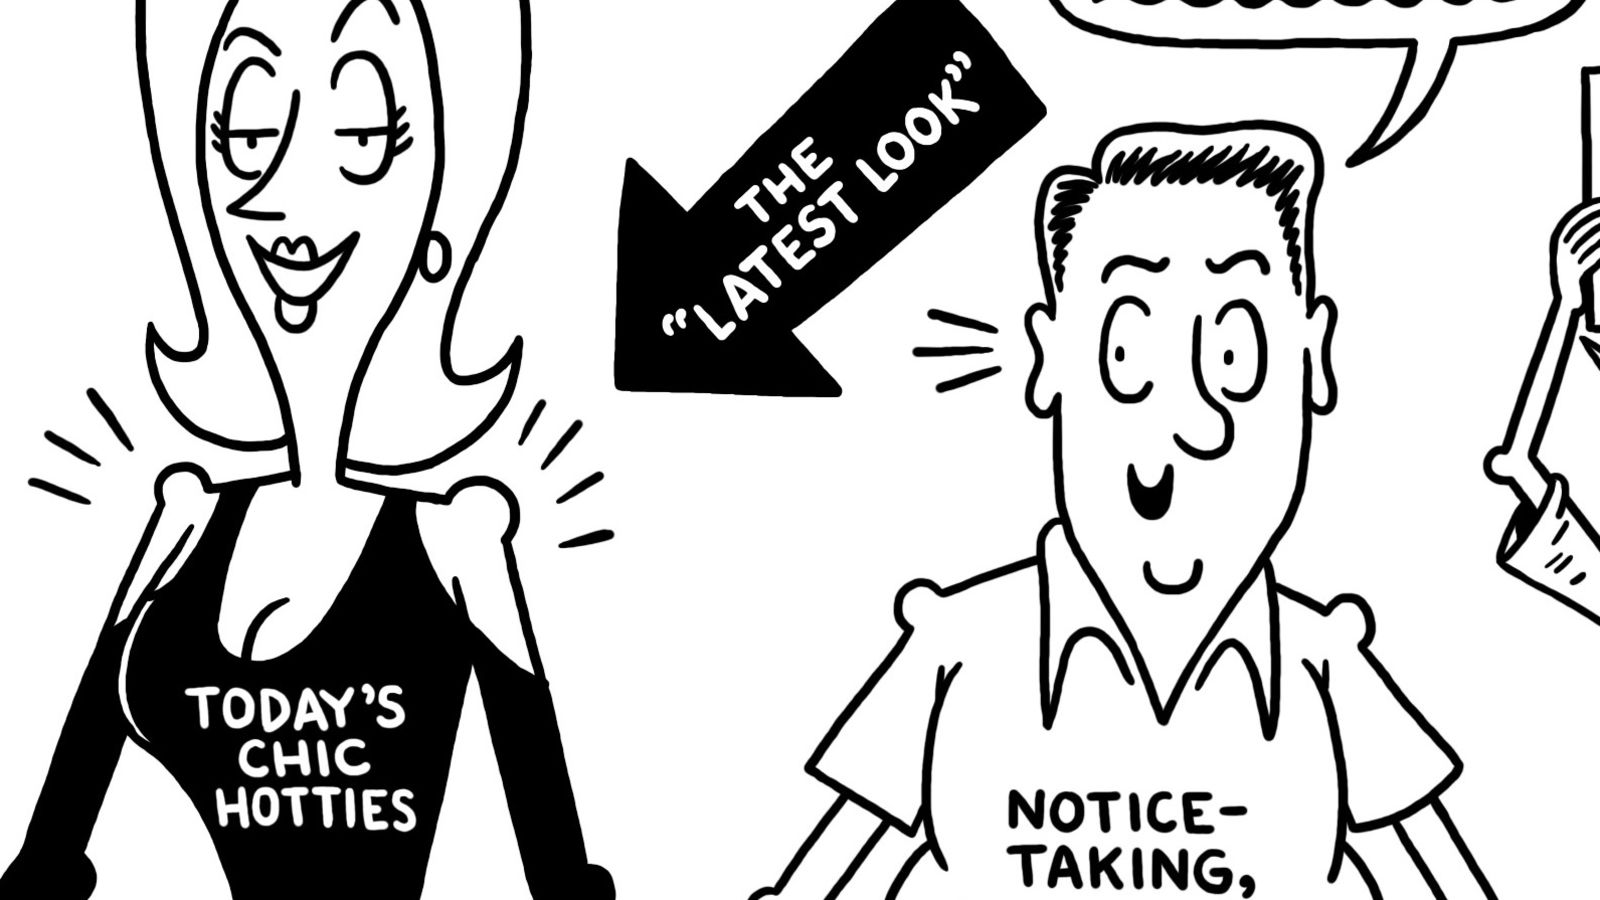 This Week's Editorial Cartoon: 'Skin And Bare It' https://t.co/pleVZz0UfV https://t.co/kSGBvvIxud